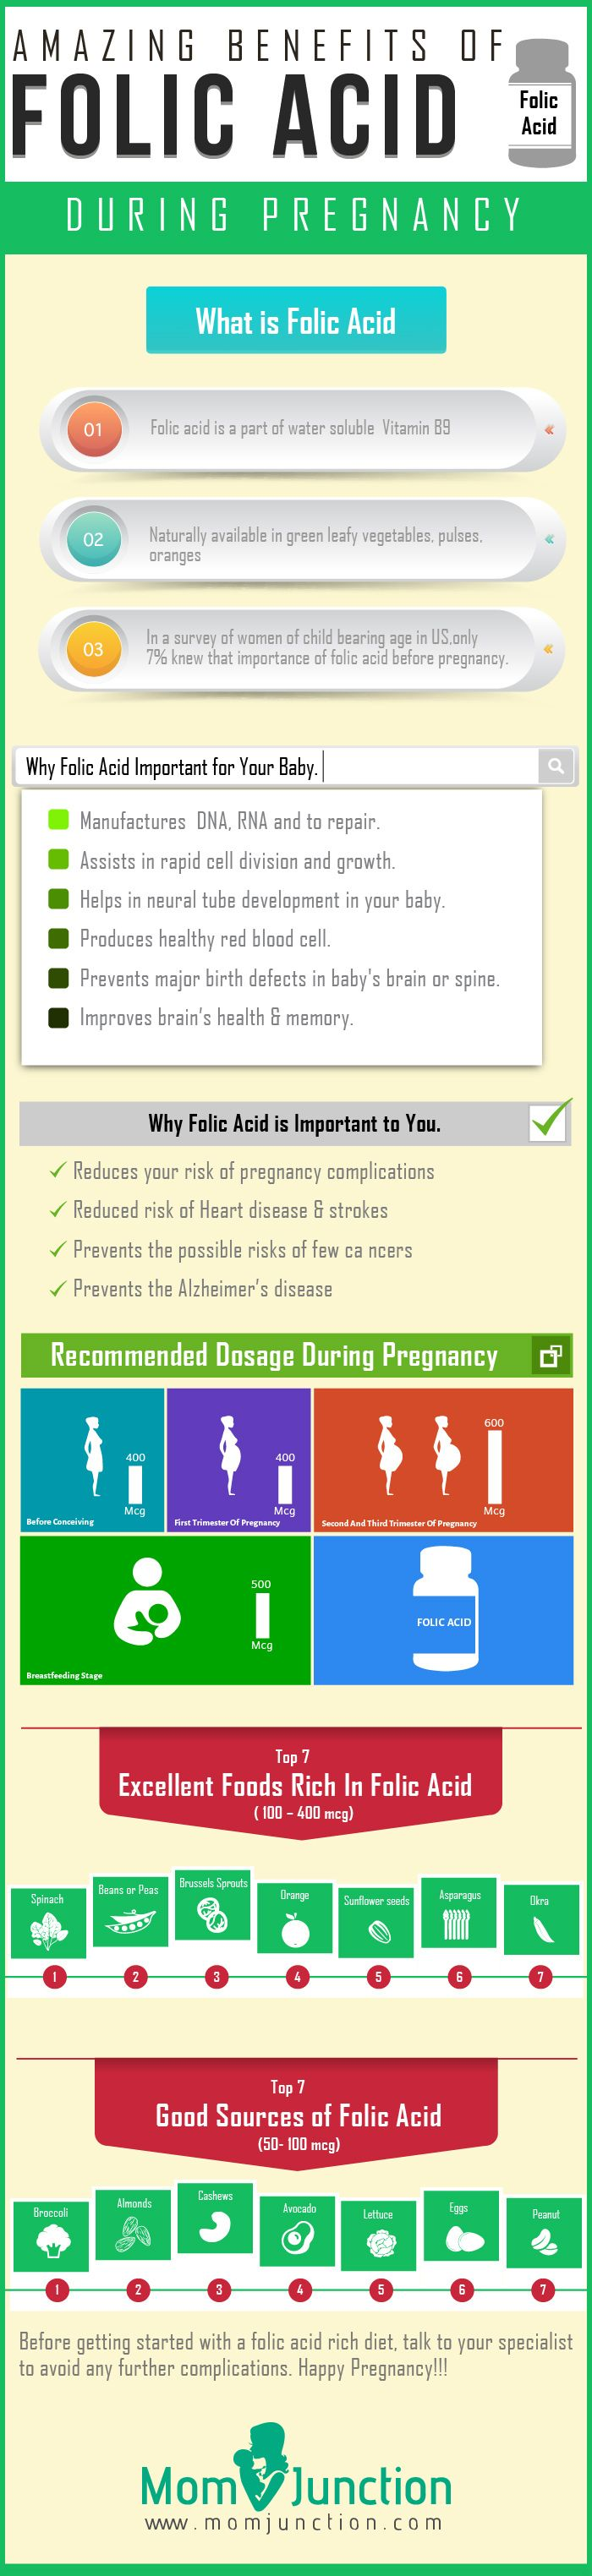 This pin describes recommended amount of folic acid to take while pregnant, along with food sources and vitamins that contain folic acid. This mainly talks about the diseases and defects that folate prevents, one being neural tube defect. You can learn more about this by visiting the following URL: http://www.cdc.gov/features/folicacidbenefits/index.html